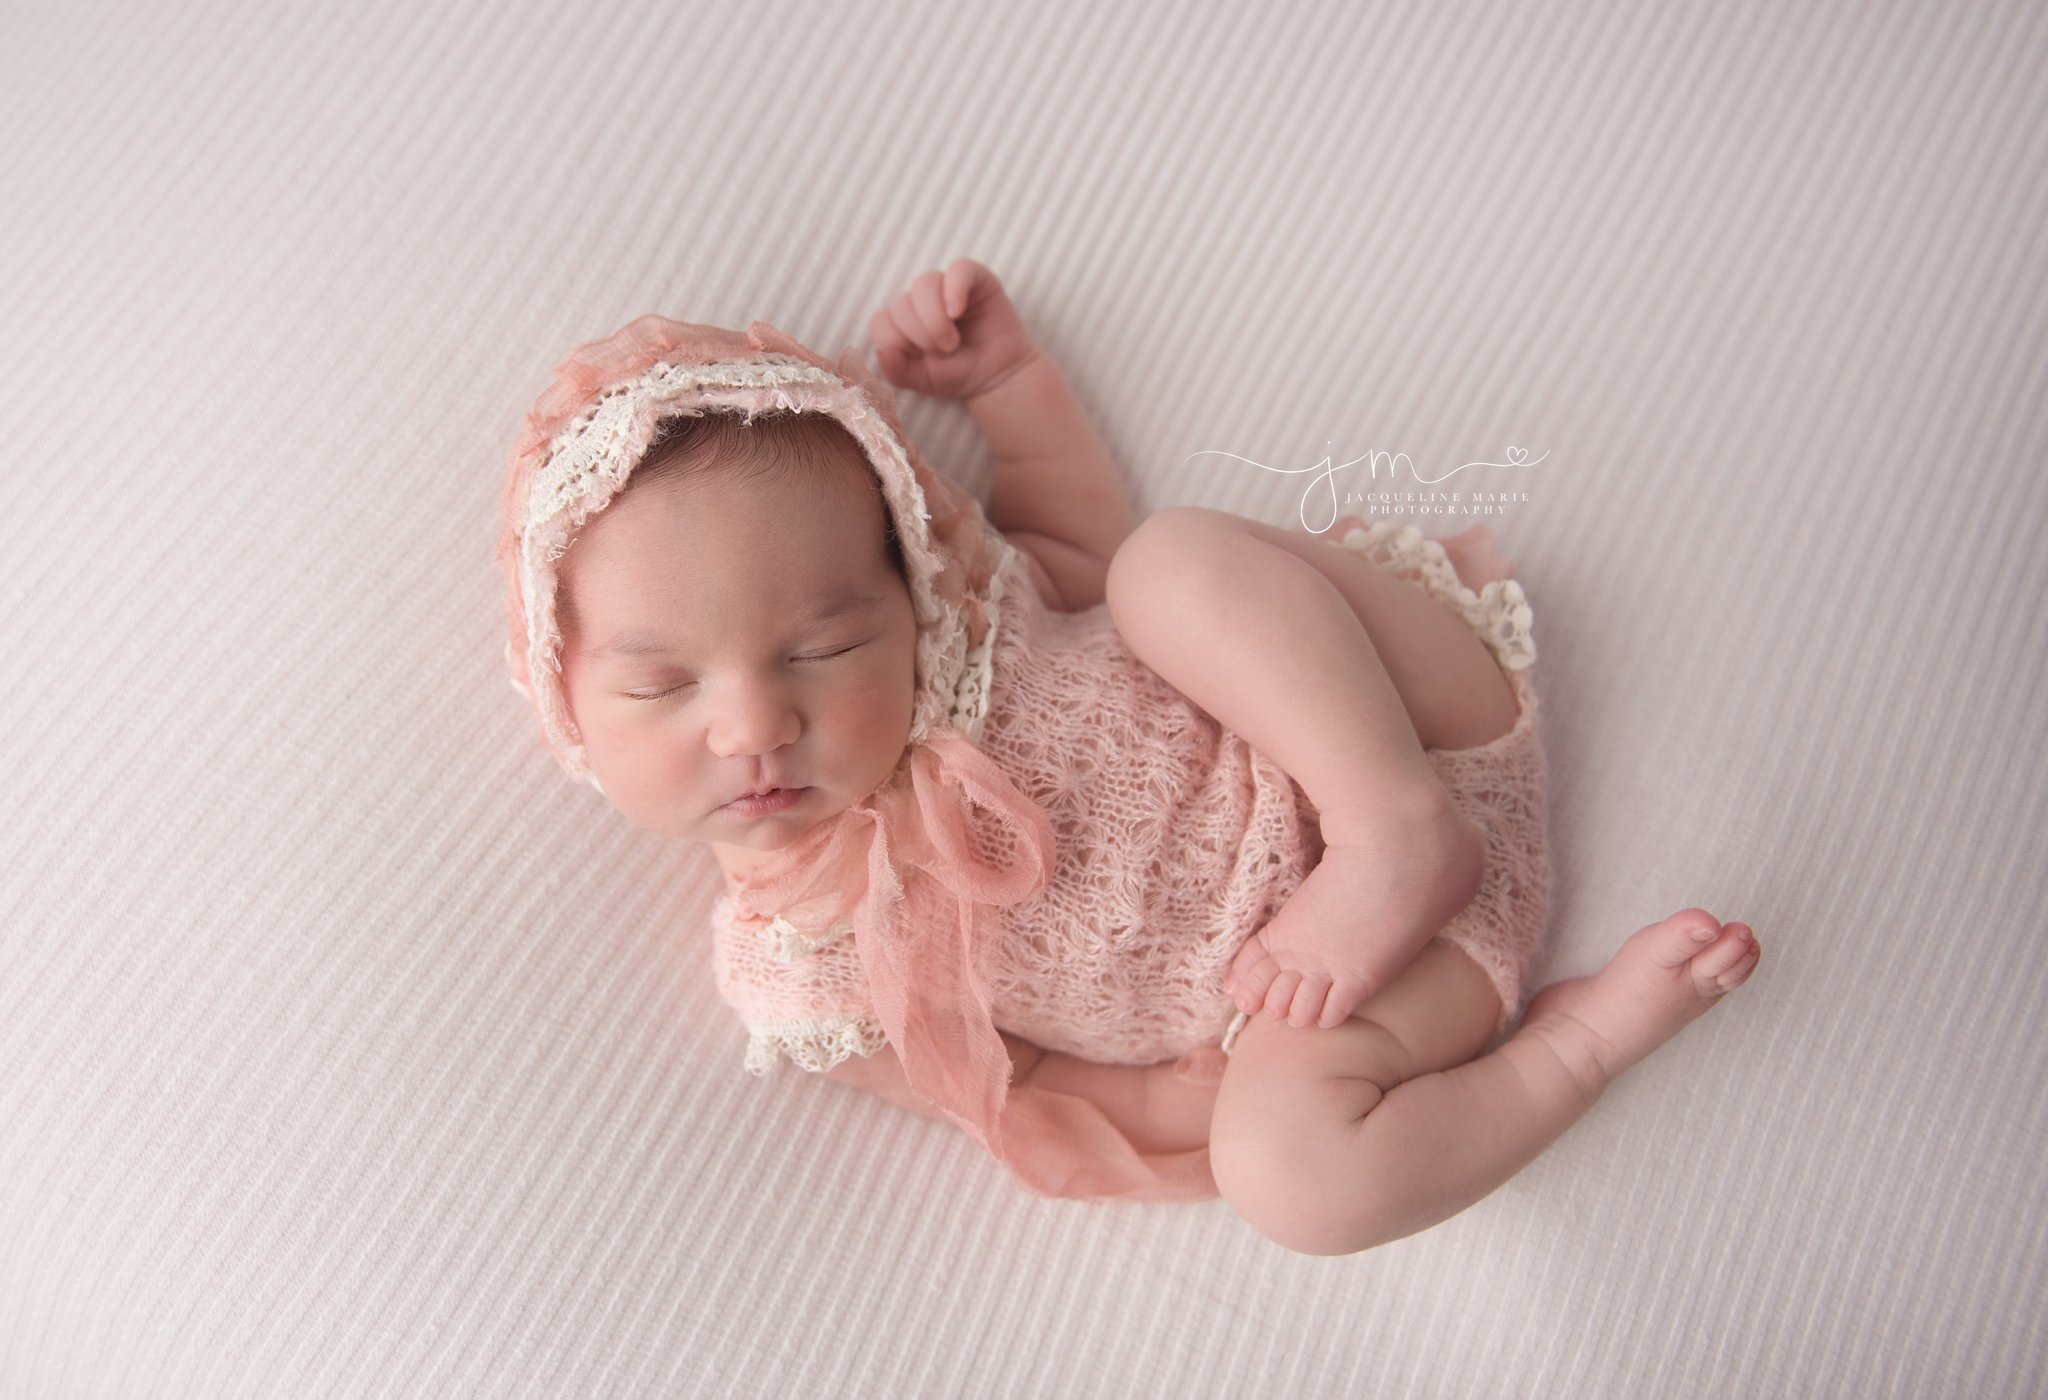 columbus ohio newborn photographer features images of baby girl wearing pink and cream lace bonnet while sleeping